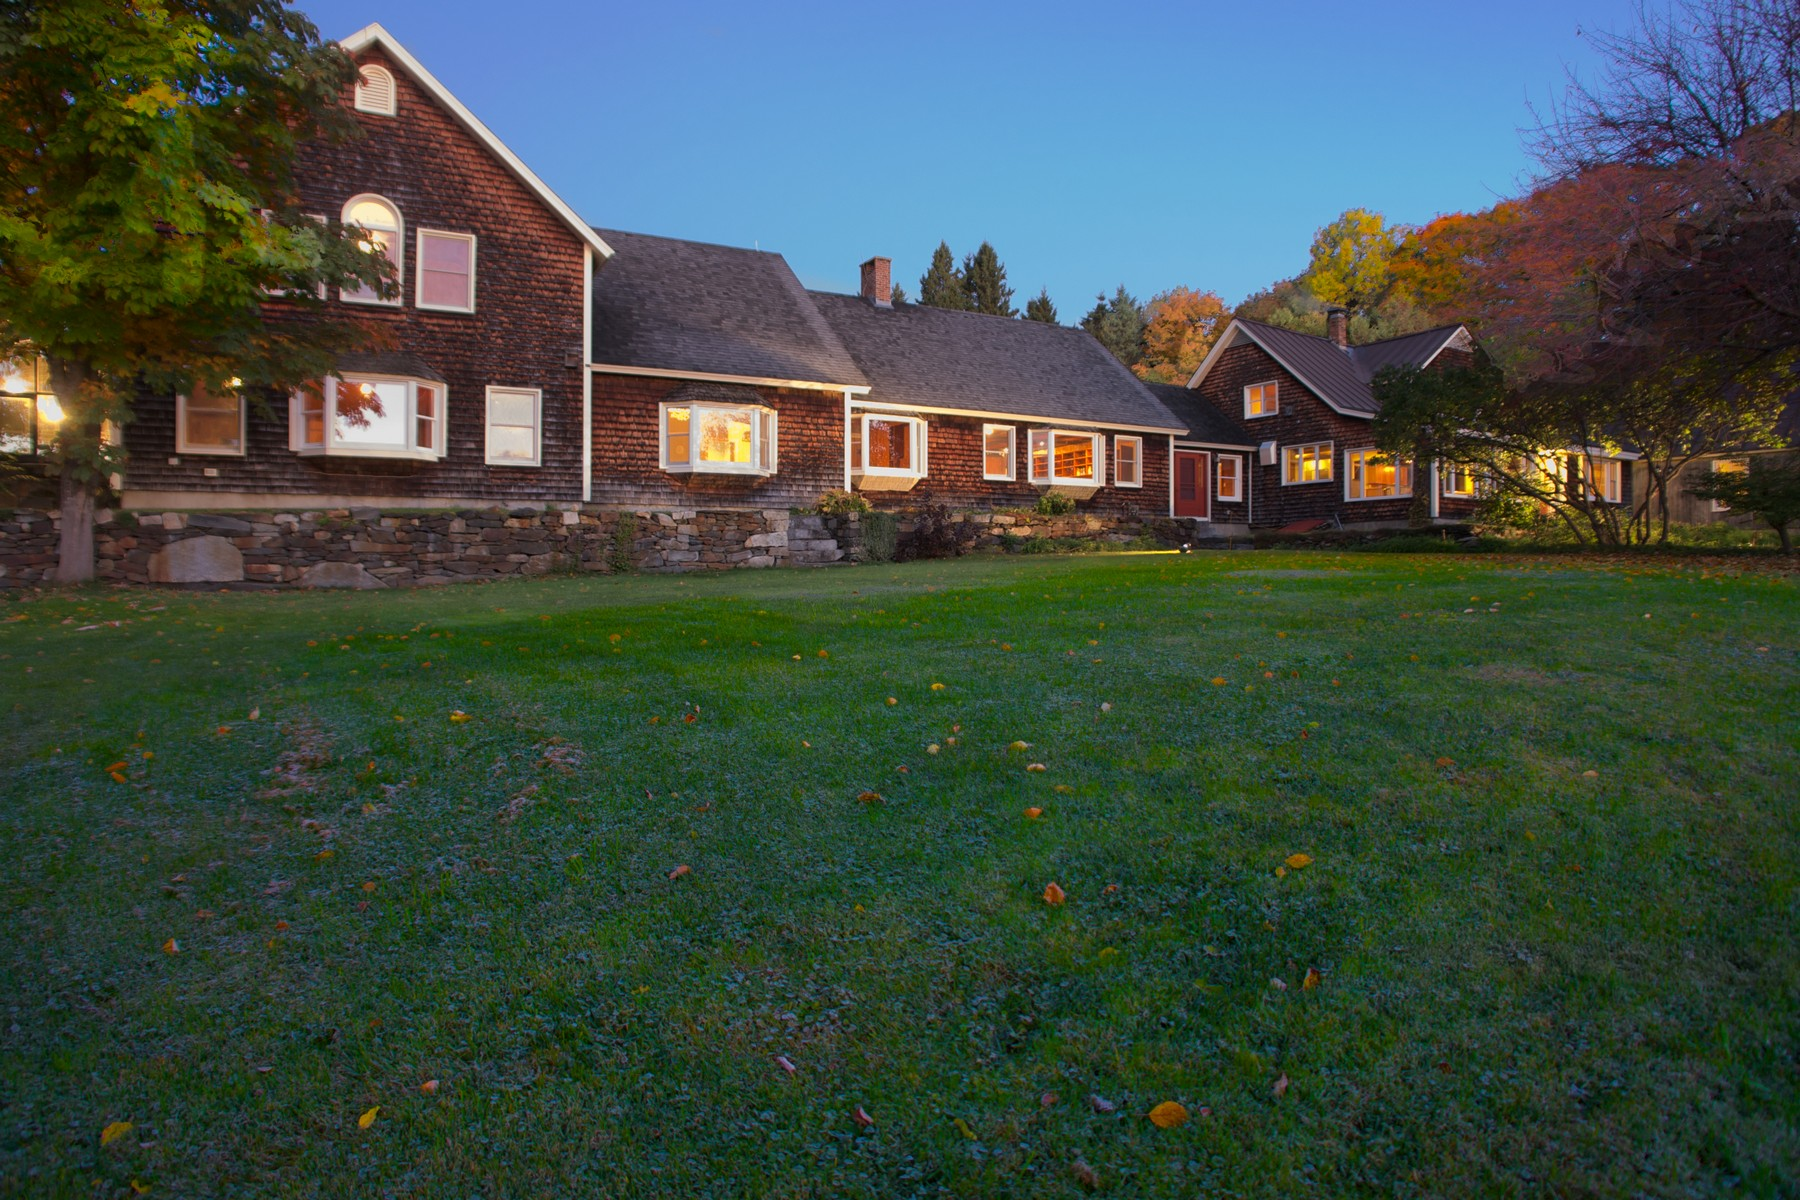 Single Family Home for Sale at 1389 King George Farm, Sutton Sutton, Vermont, 05862 United States